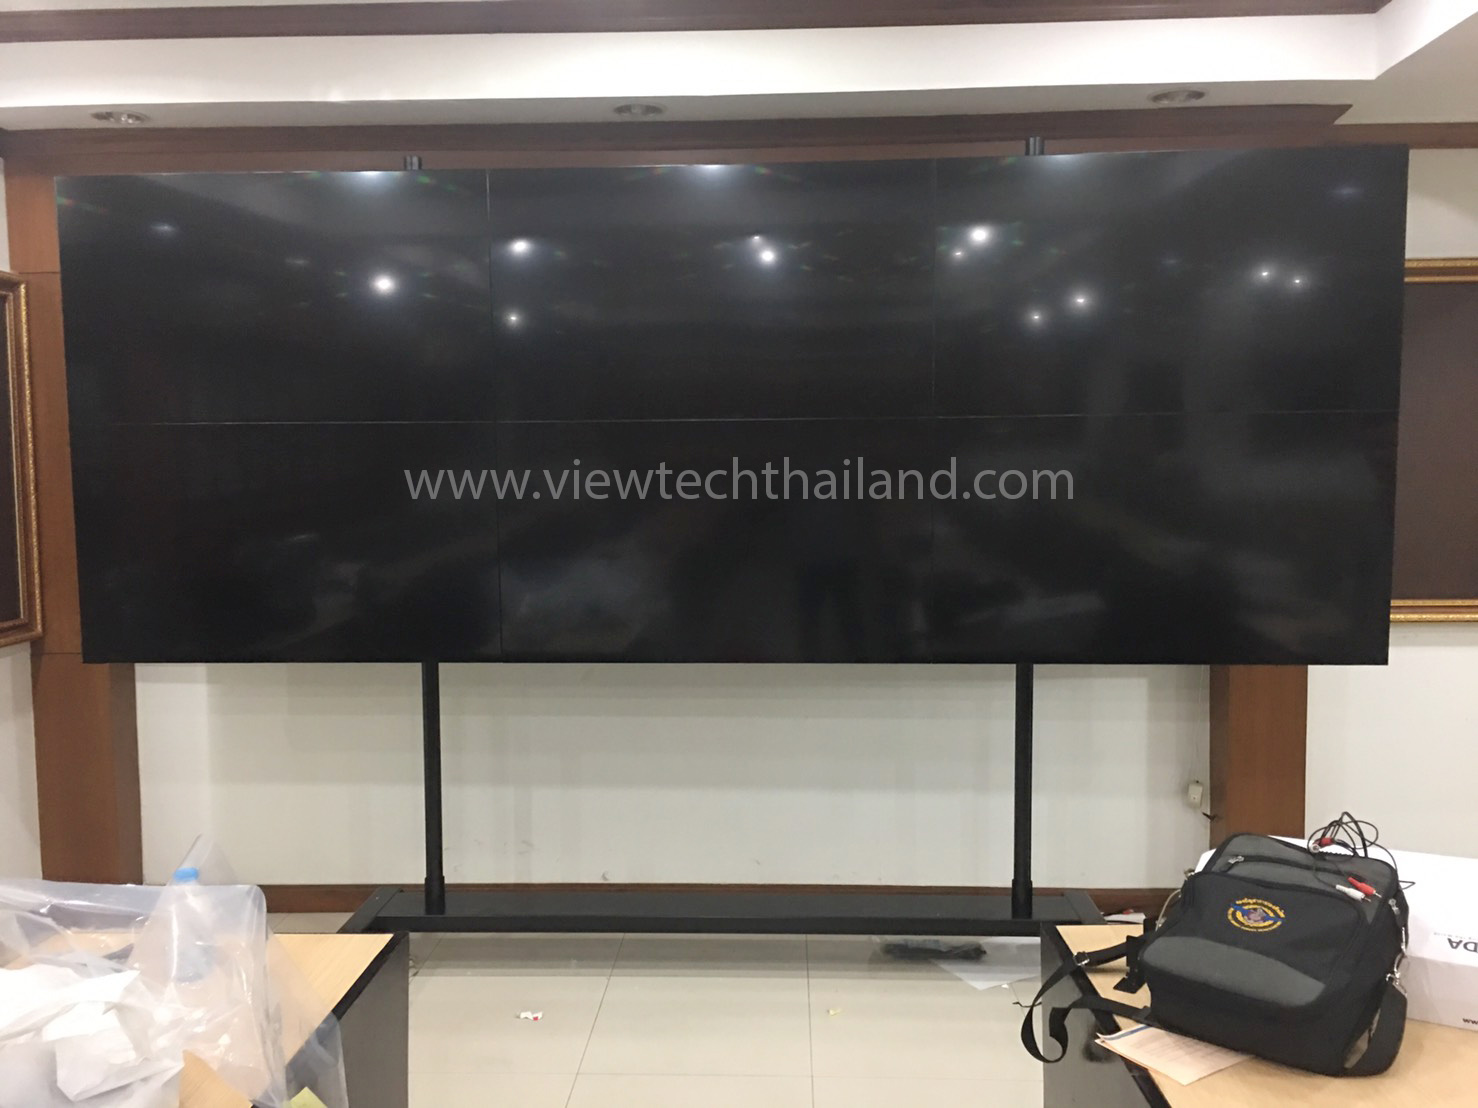 video wall, ขาตั้งทีวี, led stands,วิวเทค,viewtech, ขาตั้งจอled